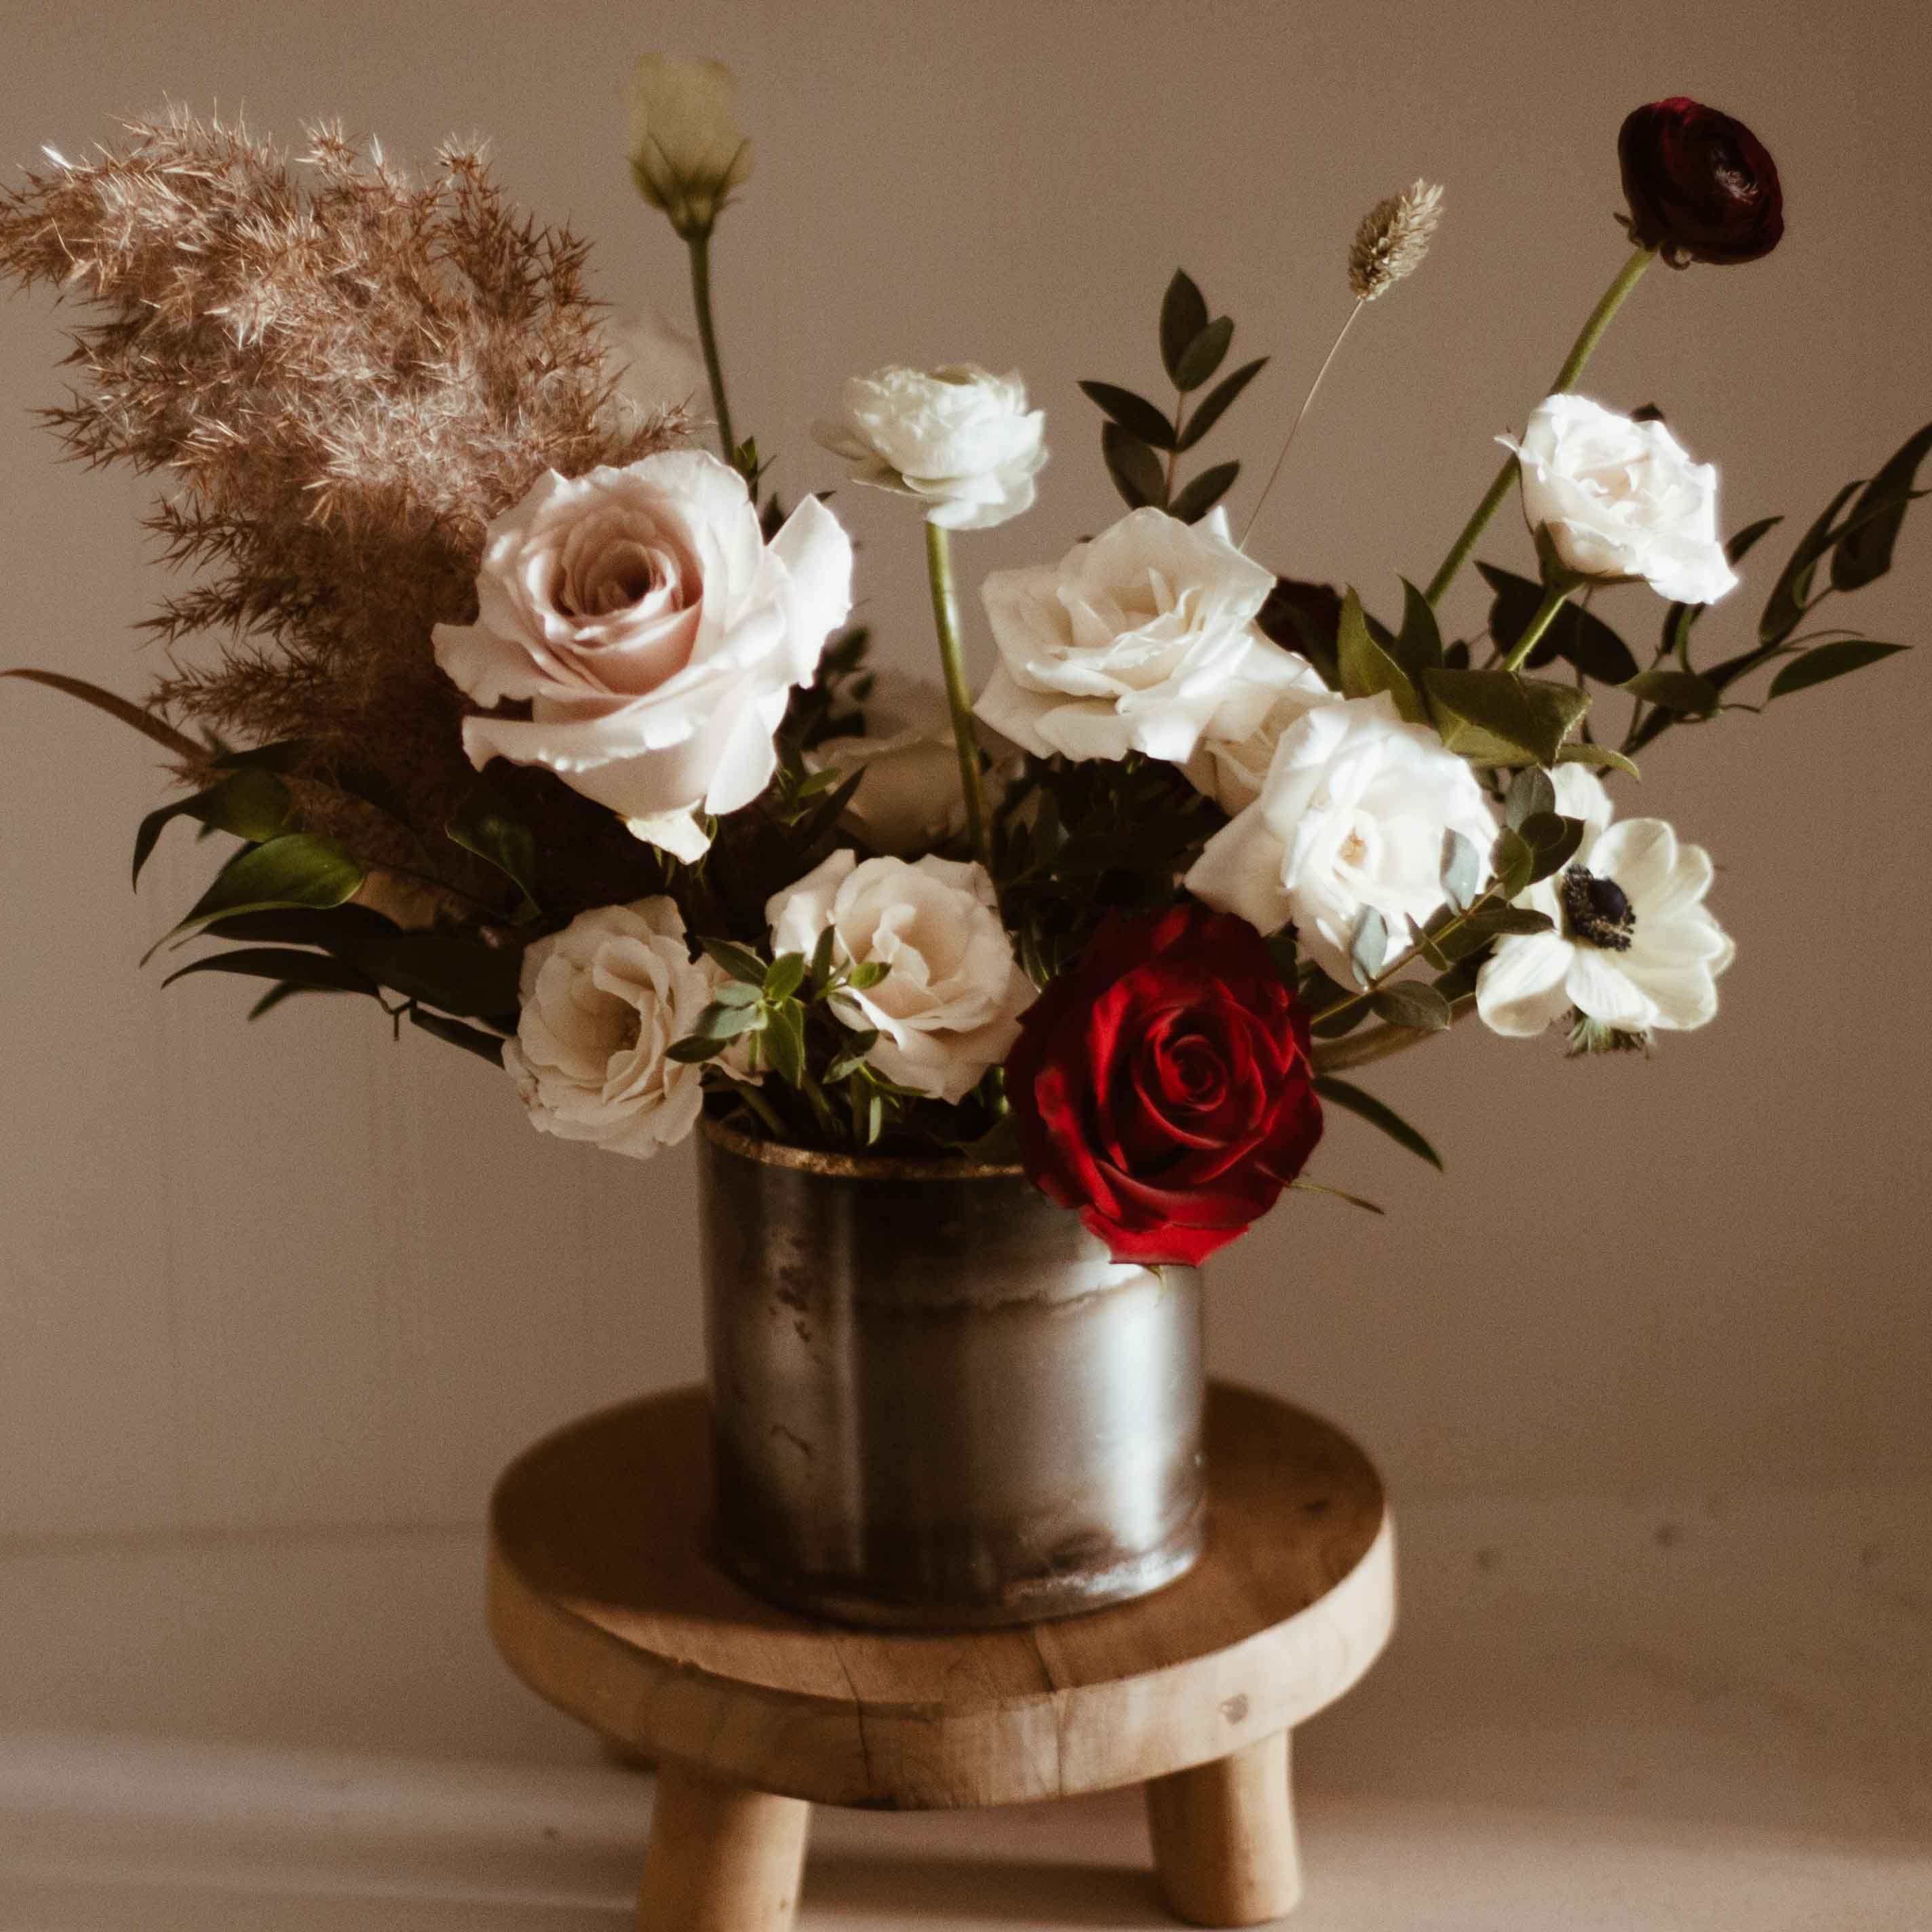 Romantic moody modern vase arrangement for Valentine's Day